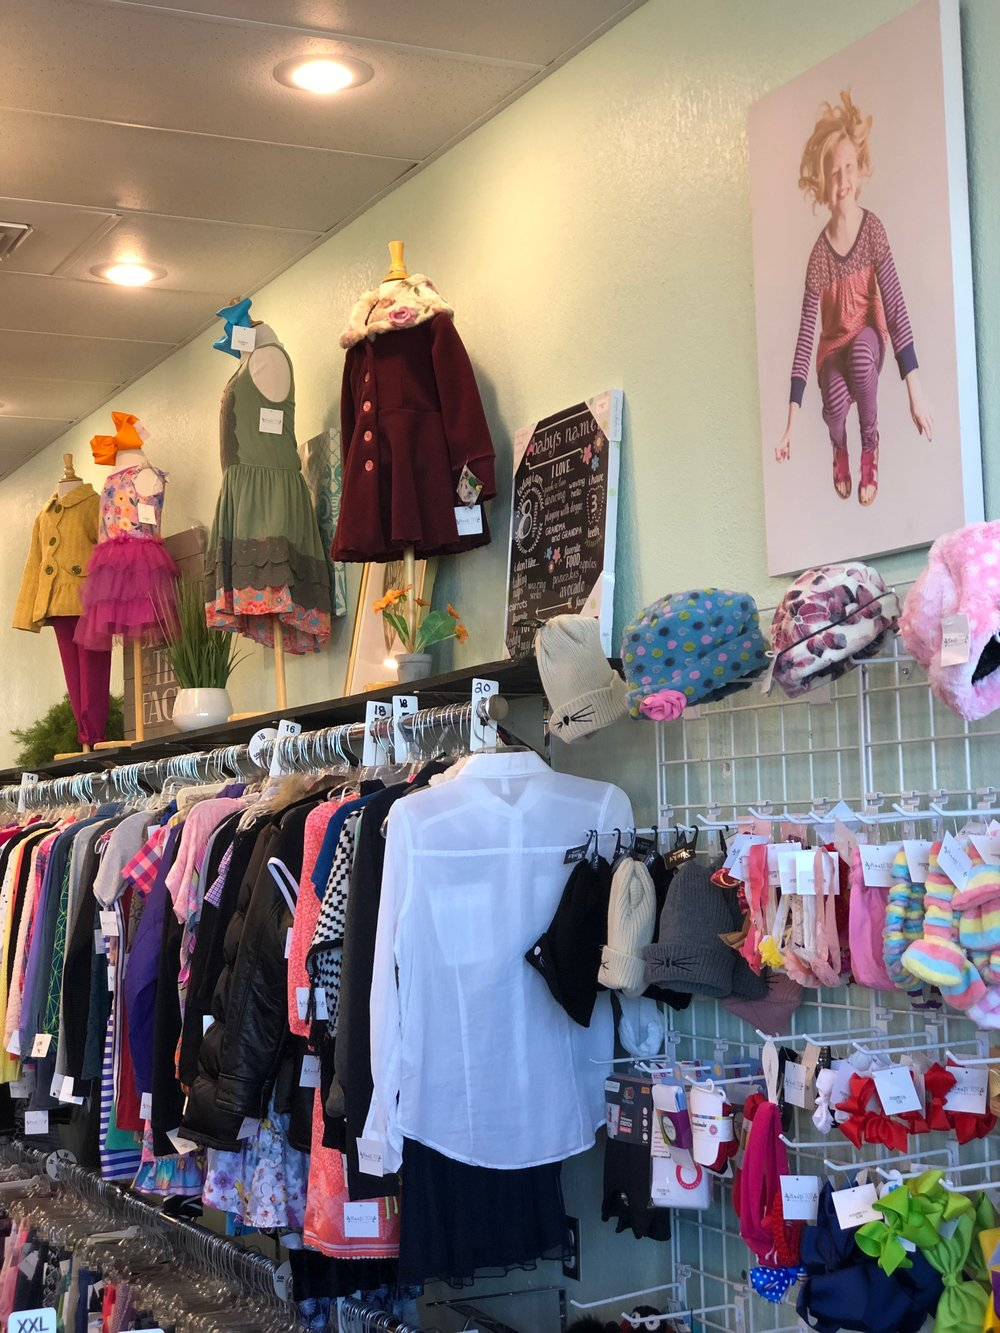 50681e27 Our Store - We carry new and gently used clothing from size preemie to  youth 16